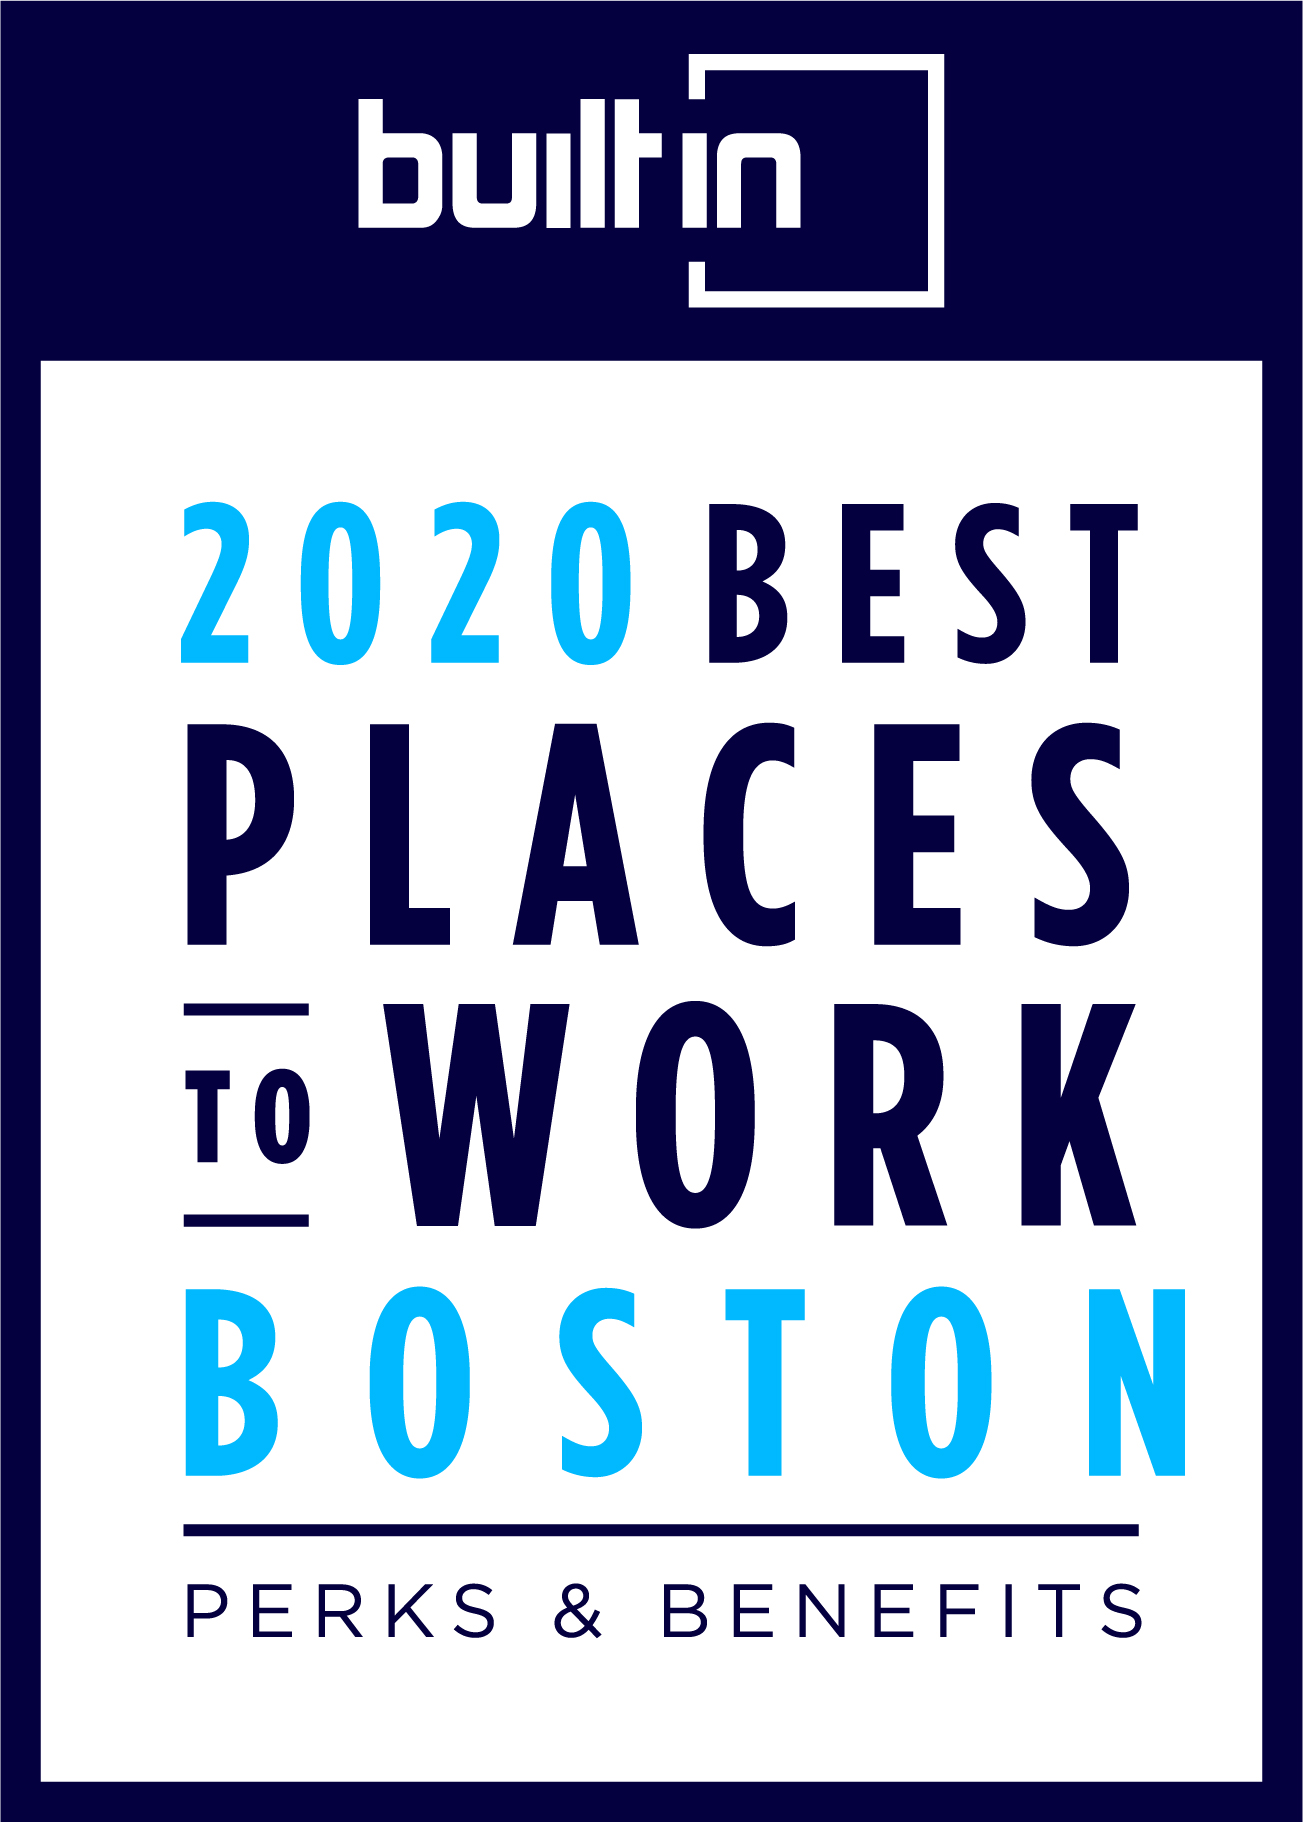 BPTW_benefits_Badge_Boston_Vertical.jpg